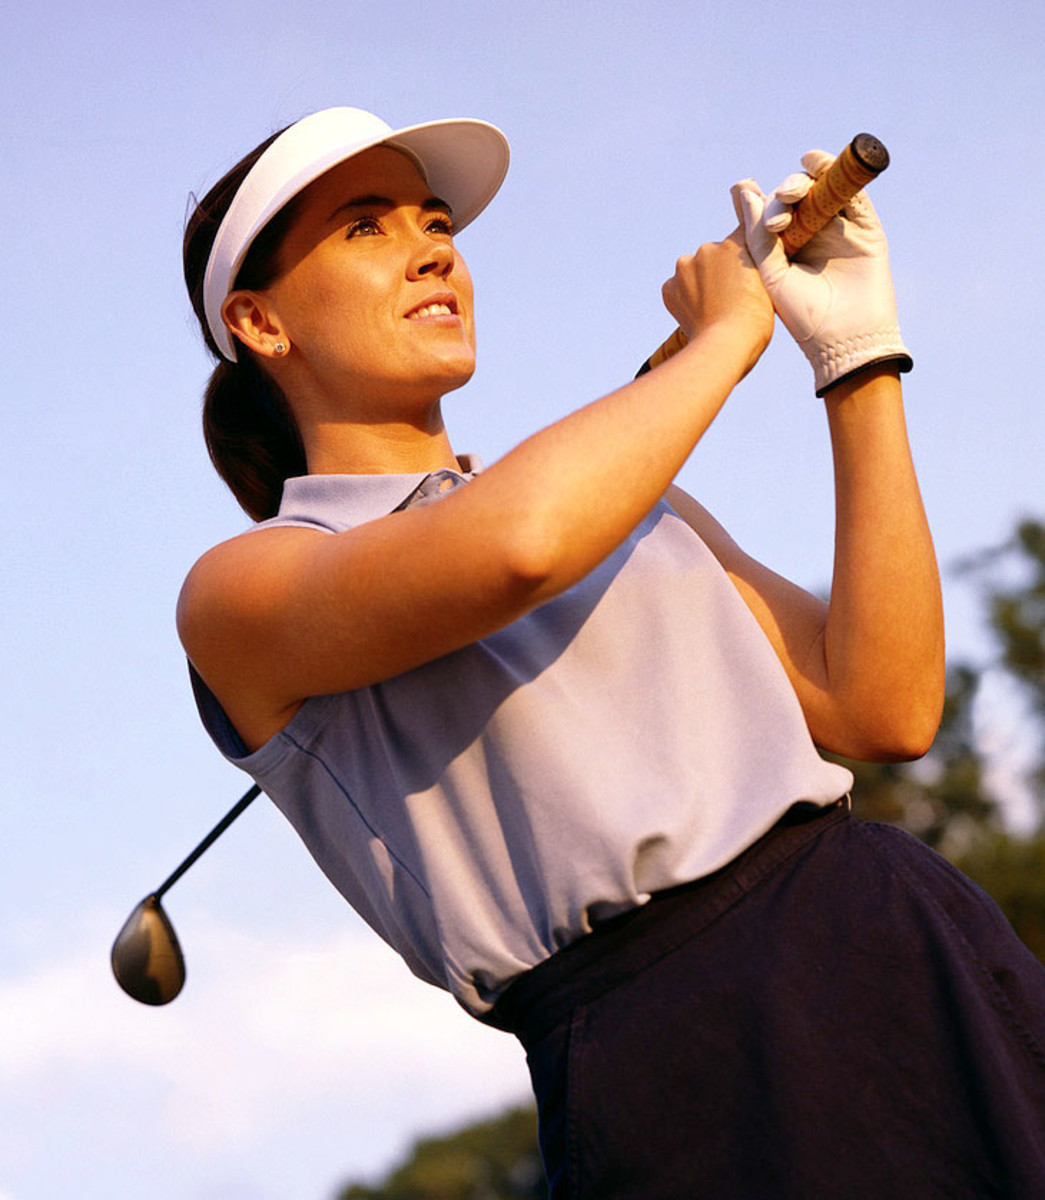 Golfer Looking at the Result of Golf Shot